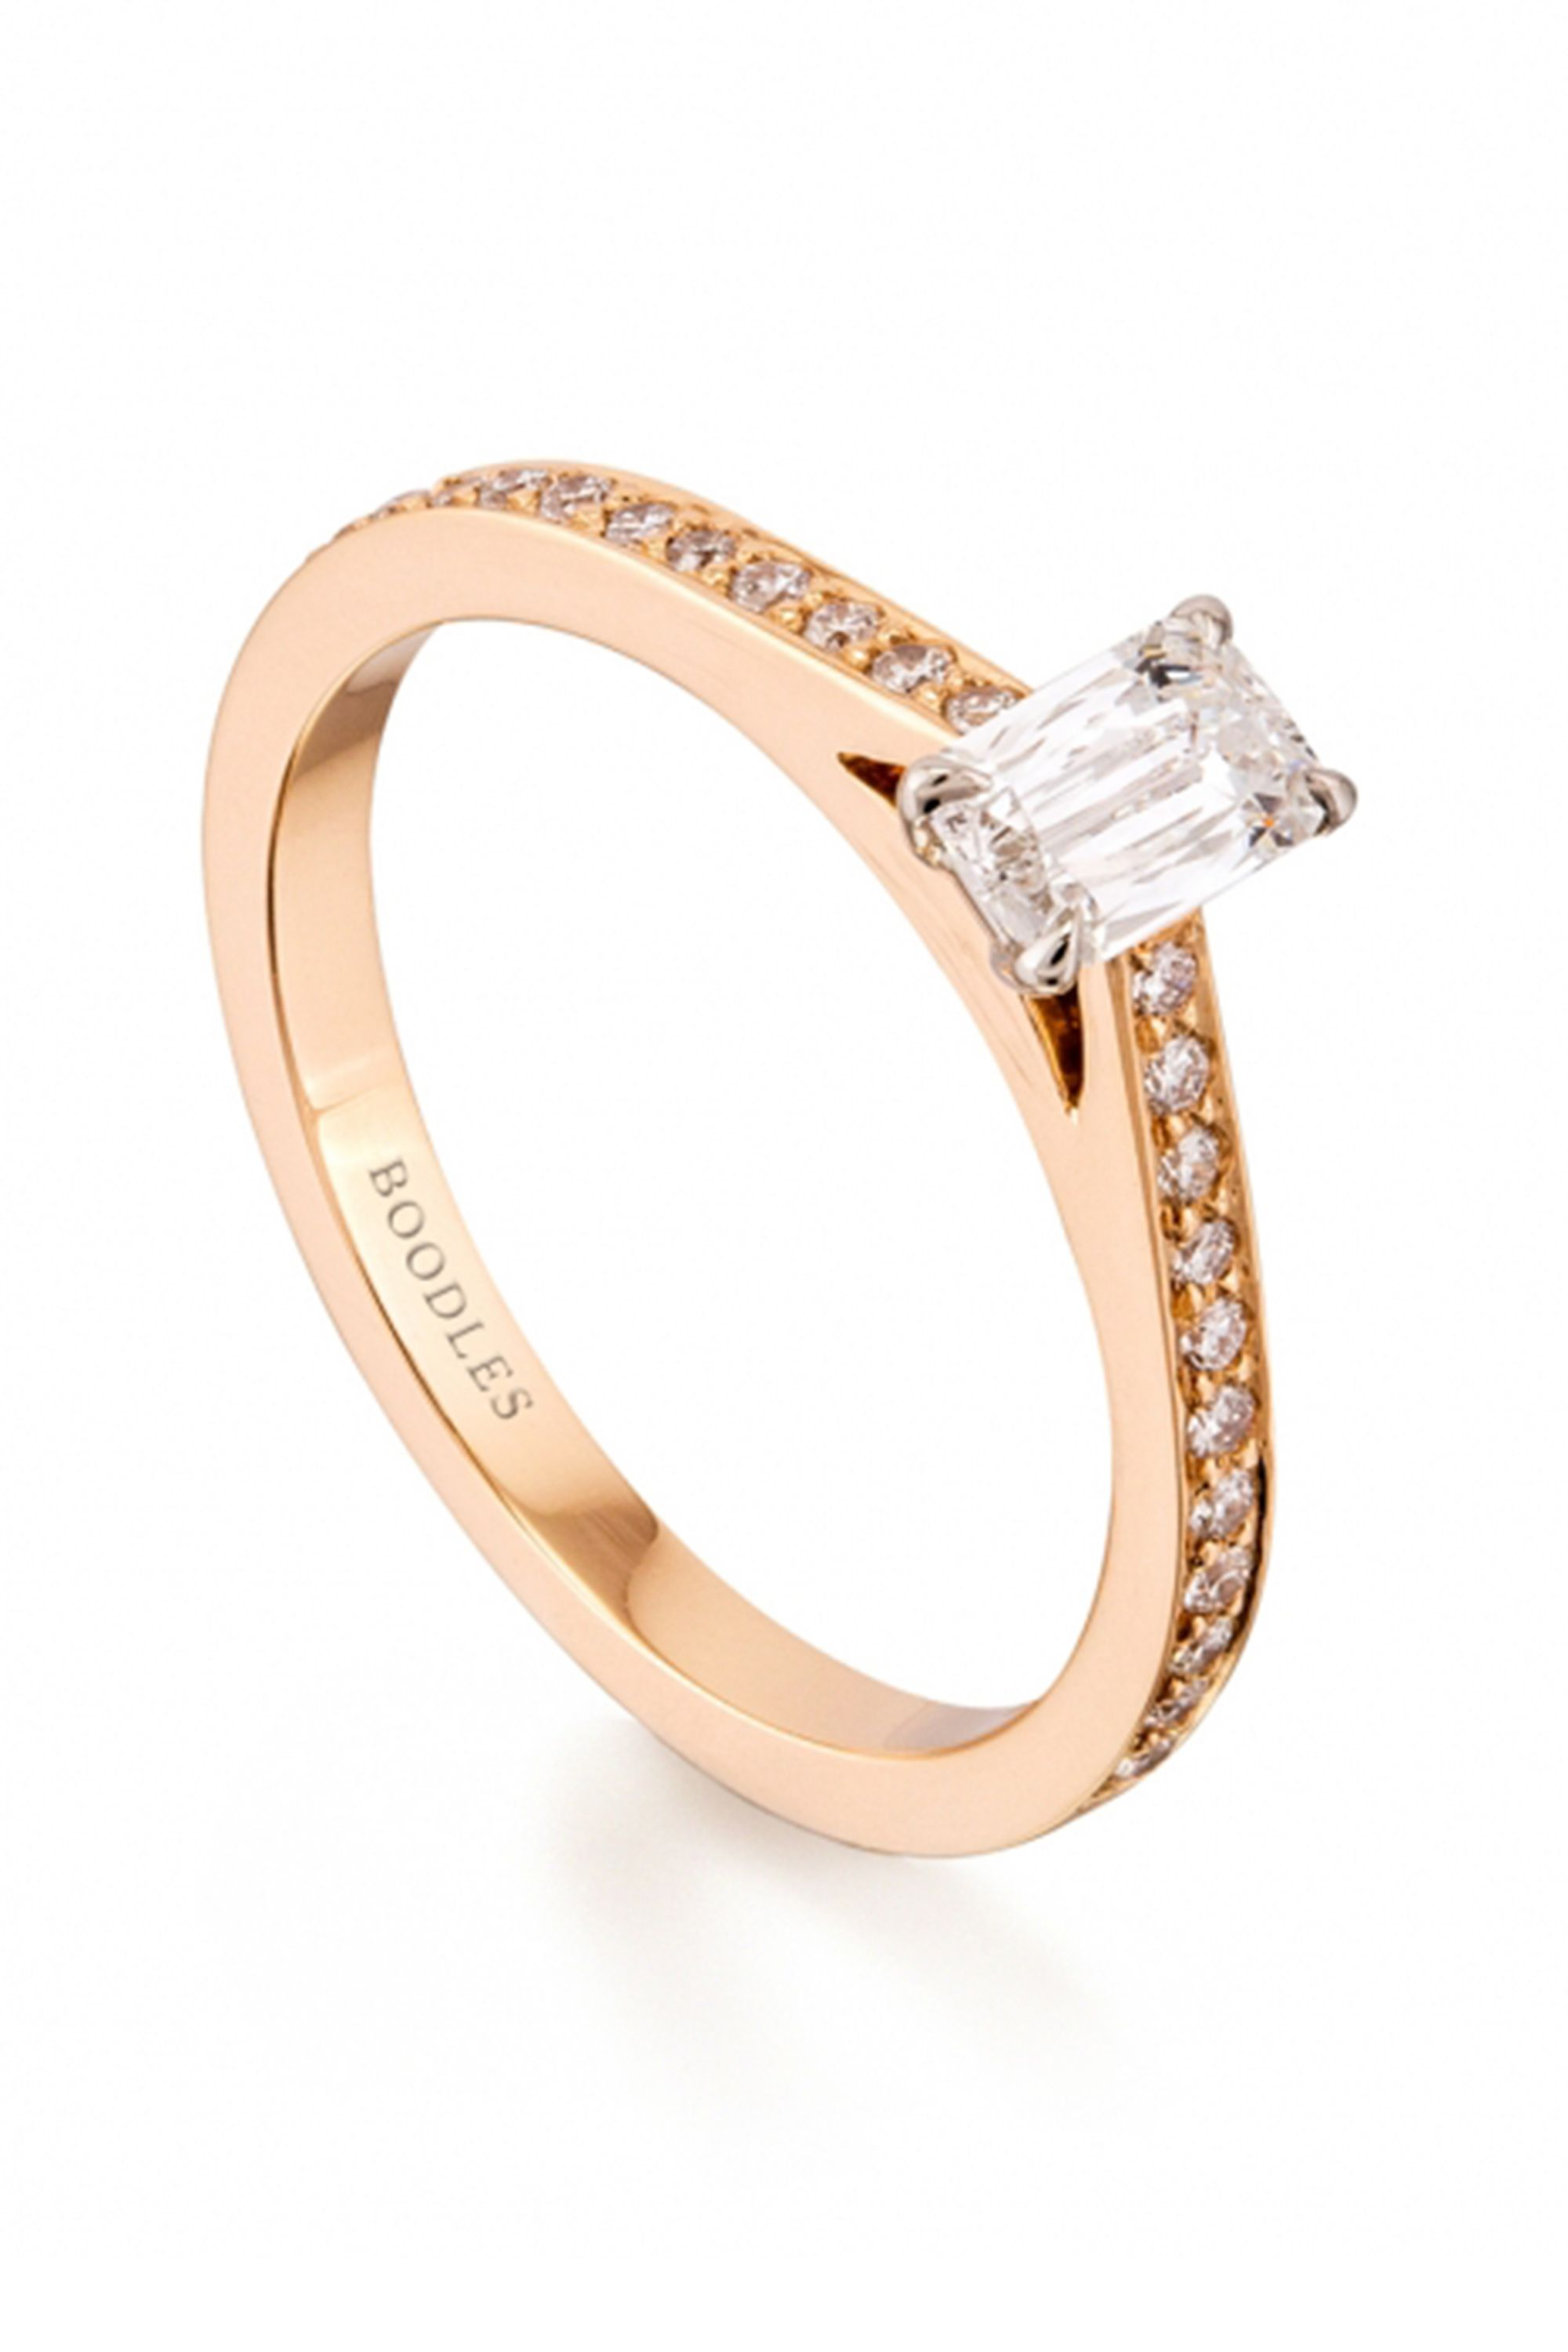 Our Guide To The Best Engagement Rings Designer And Classic Engagement Rings